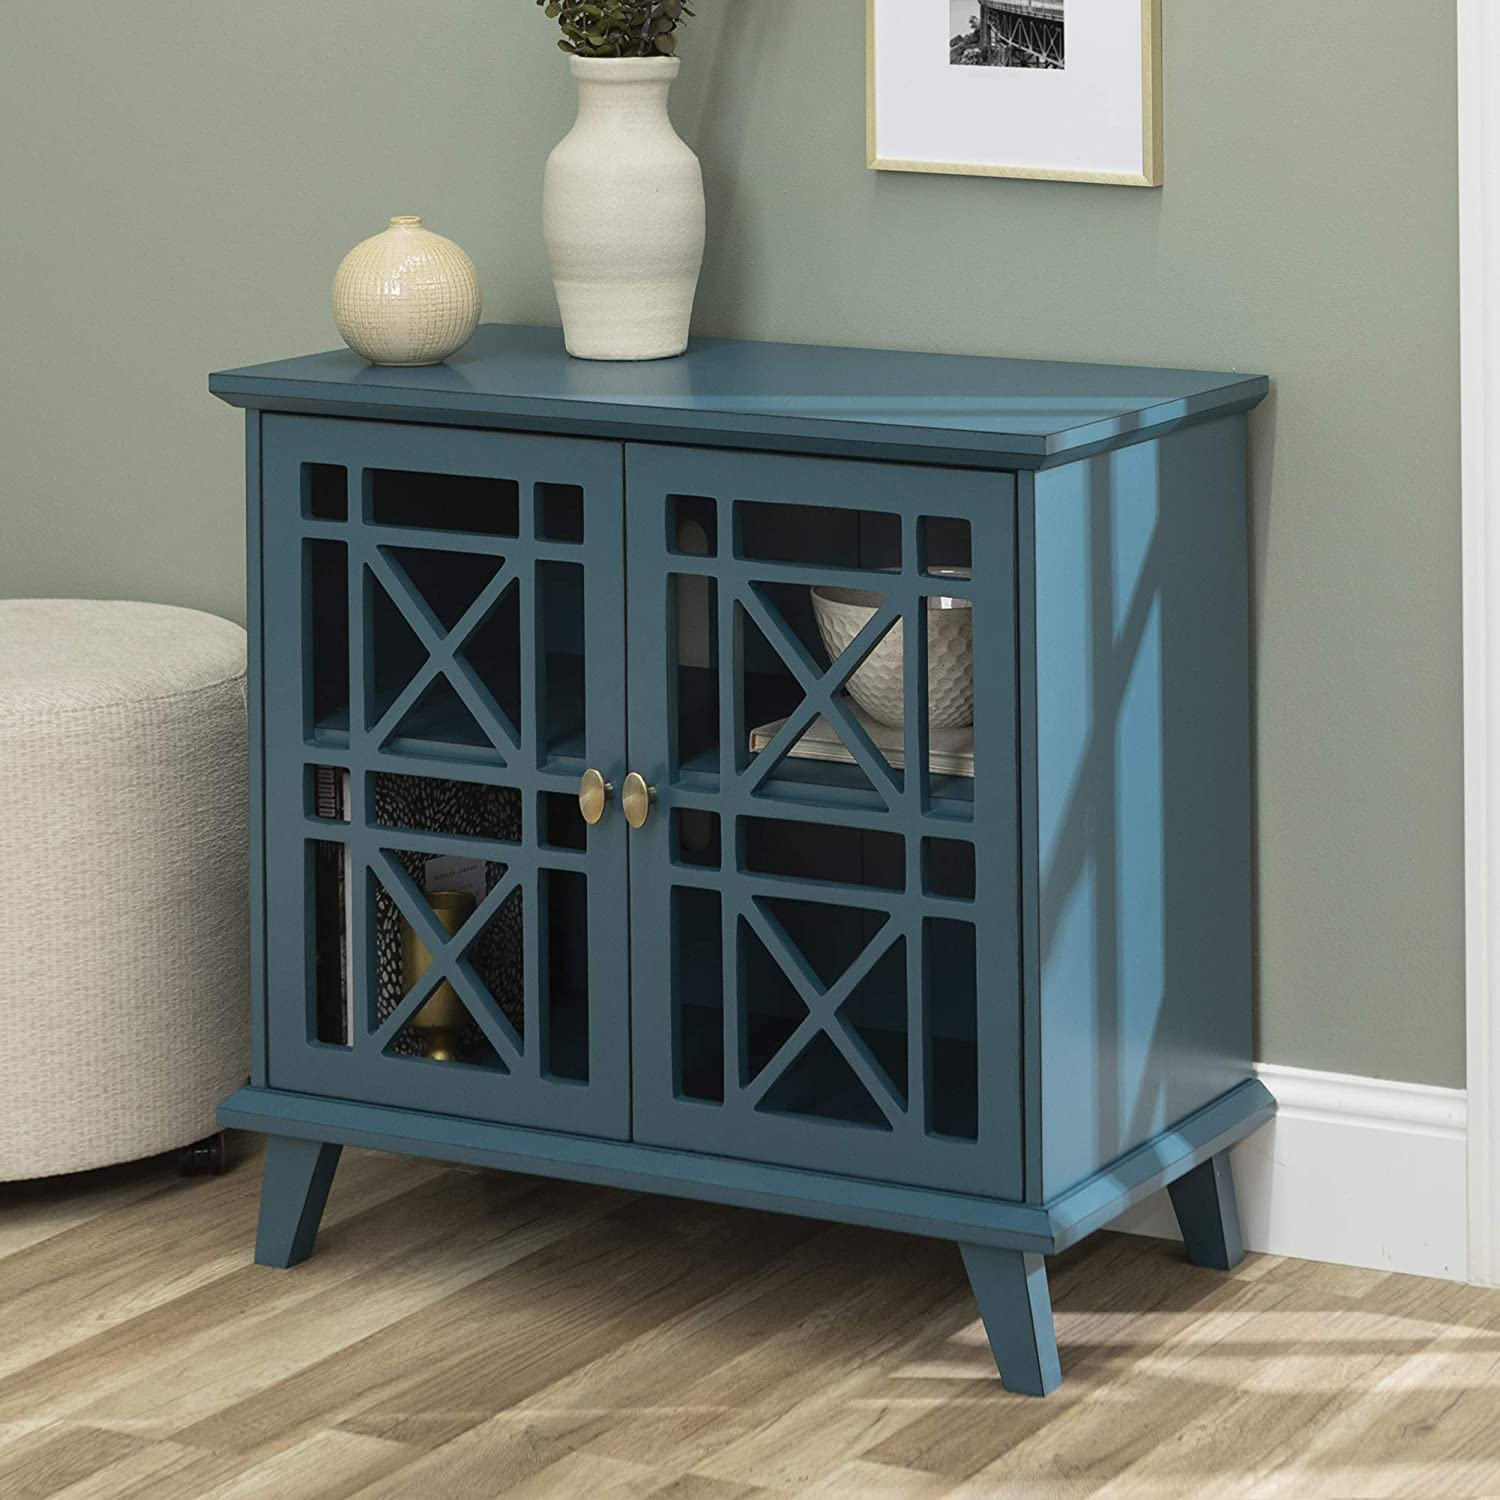 Walker Edison Furniture Company Wood Accent Buffet Sideboard Serving Storage Cabinet with Doors Entryway Kitchen Dining Console Living Room, 32 Inch, Blue: Kitchen & Dining